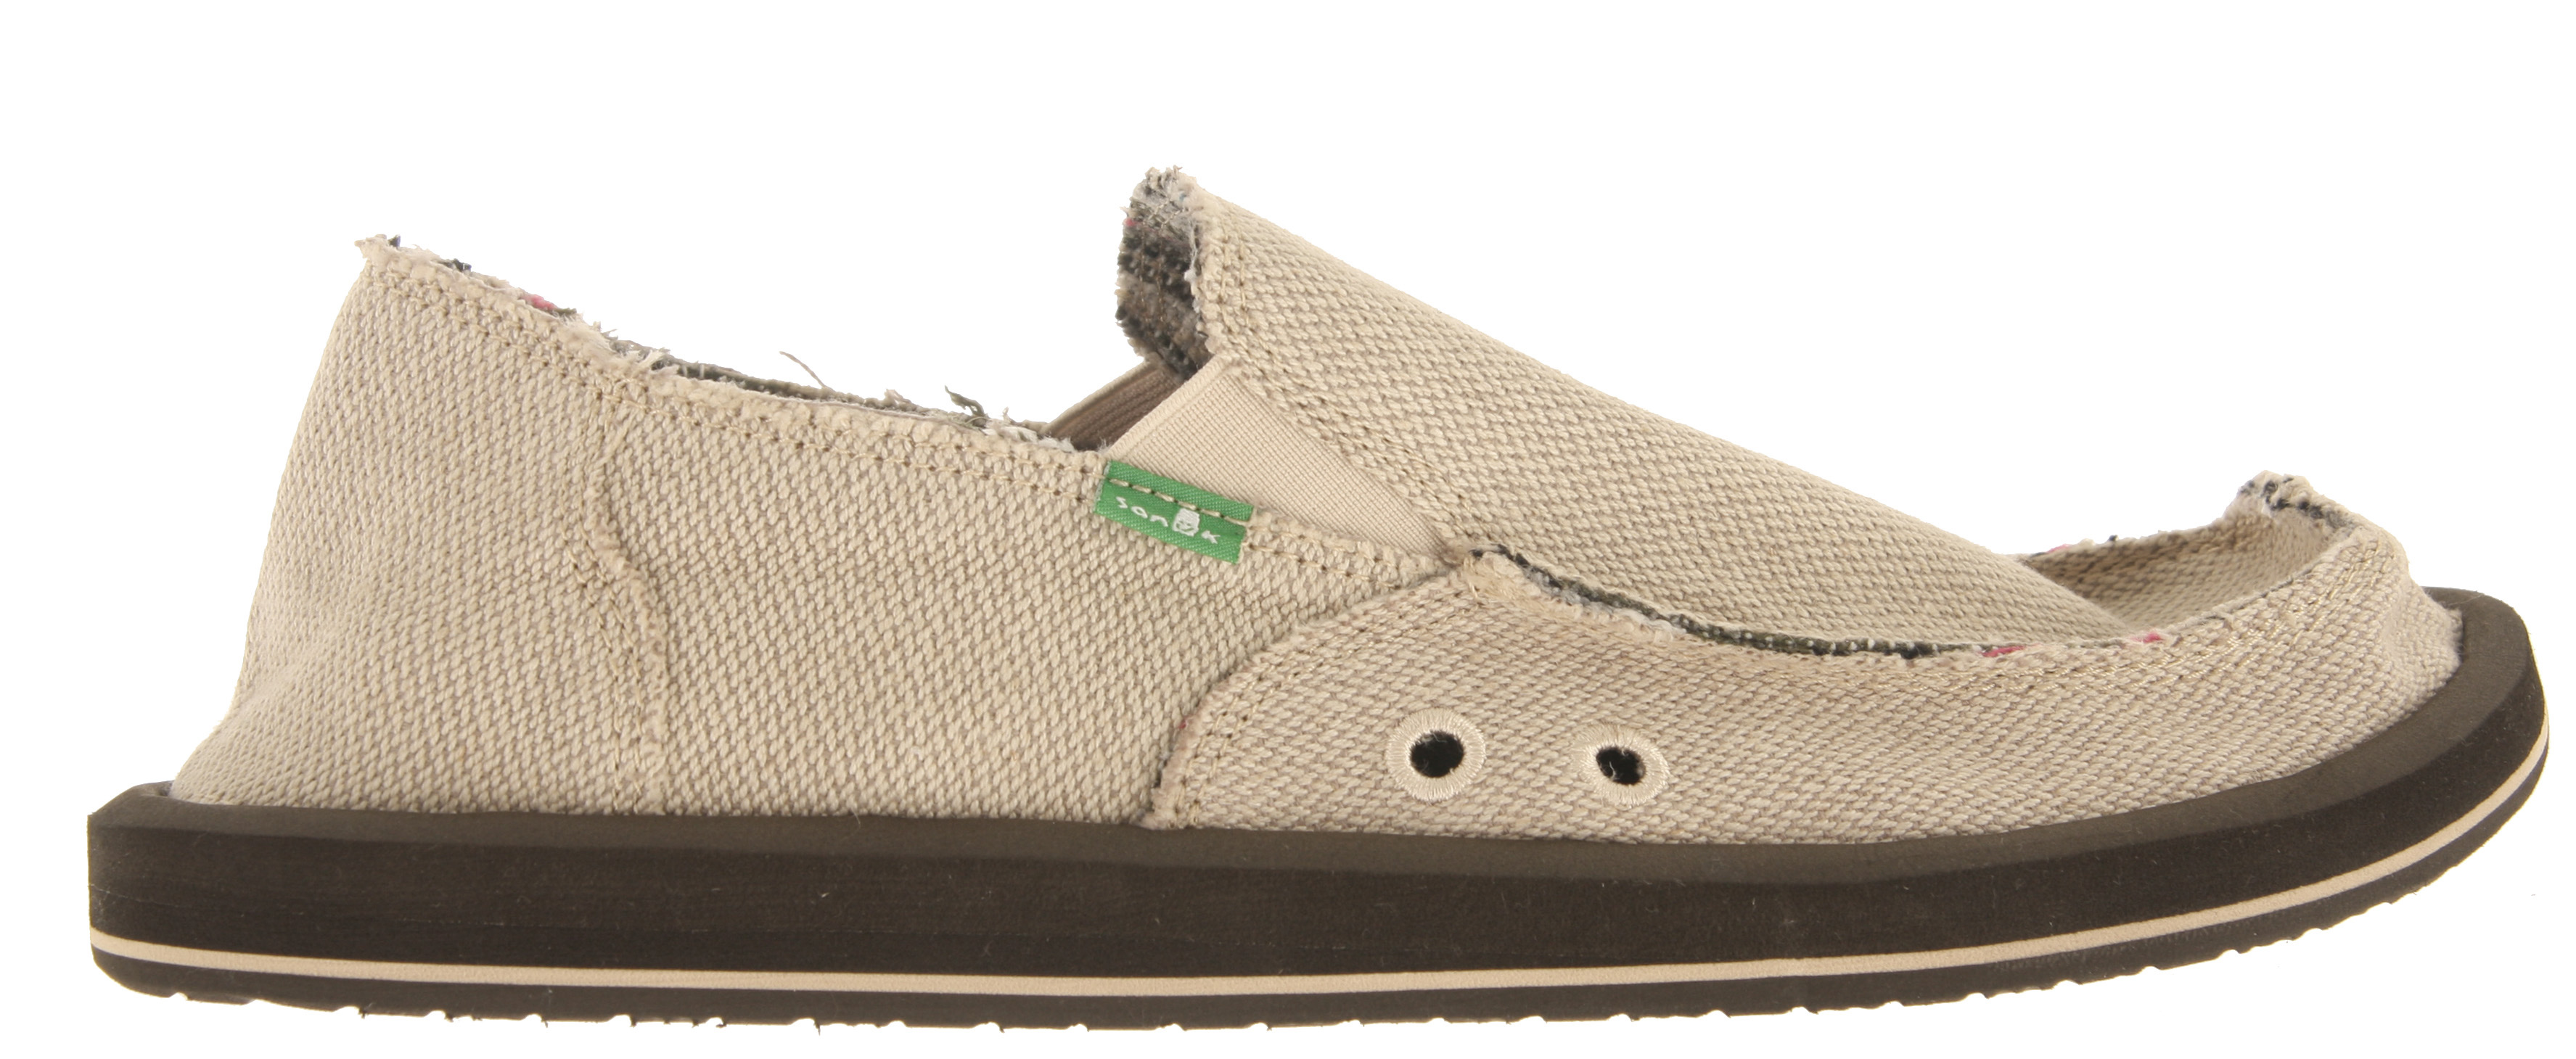 Just because you can roll it, doesn't mean you can smoke it. Key Features of the Sanuk Hemp Shoes: Super Soft, High Rebound, Molded EVA Footbed featuring AEGIS Antimicrobial additive Happy U Outsole Handmade Hemp Upper with Frayed Edge Detail Contrasting Poncho Textile Liner Vegan and Vegetarian - $39.95